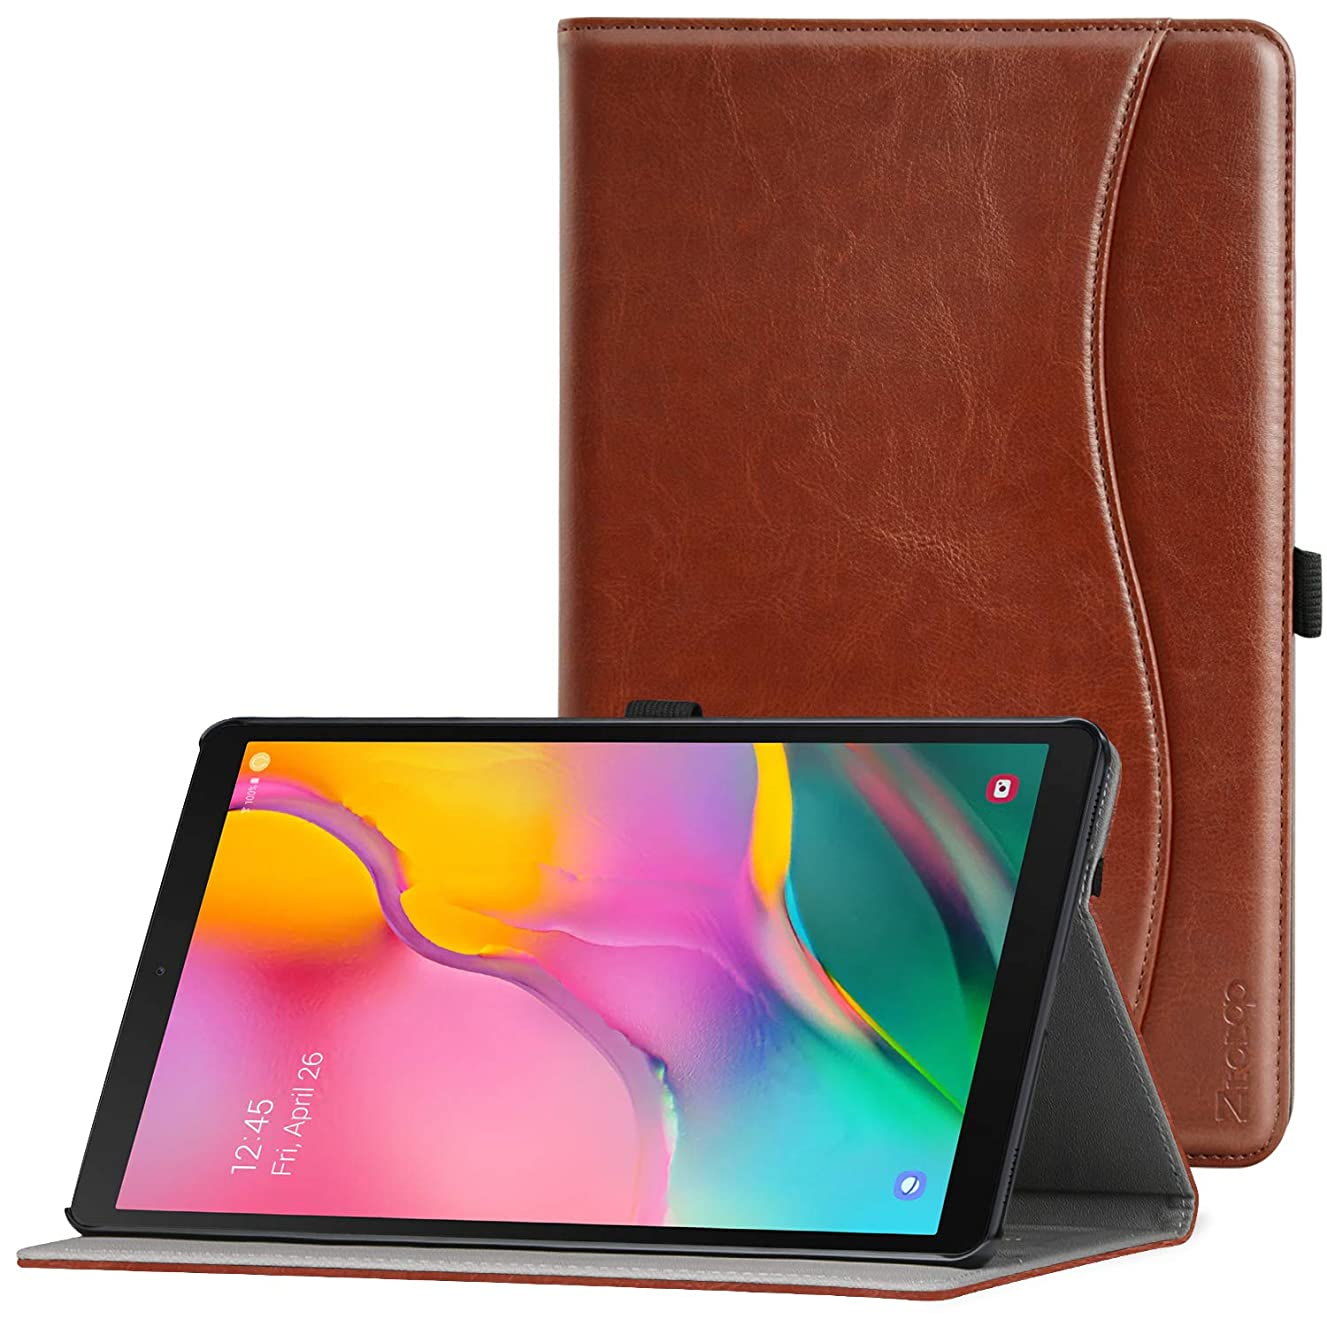 Ztotop Case for Samsung Galaxy Tab A 10.1 Inch Tablet 2019(SM-T510/T515), PU Leather Folding Stand Folio Cover with Pen Holder, Card Pocket and Multiple Viewing Angles,Brown